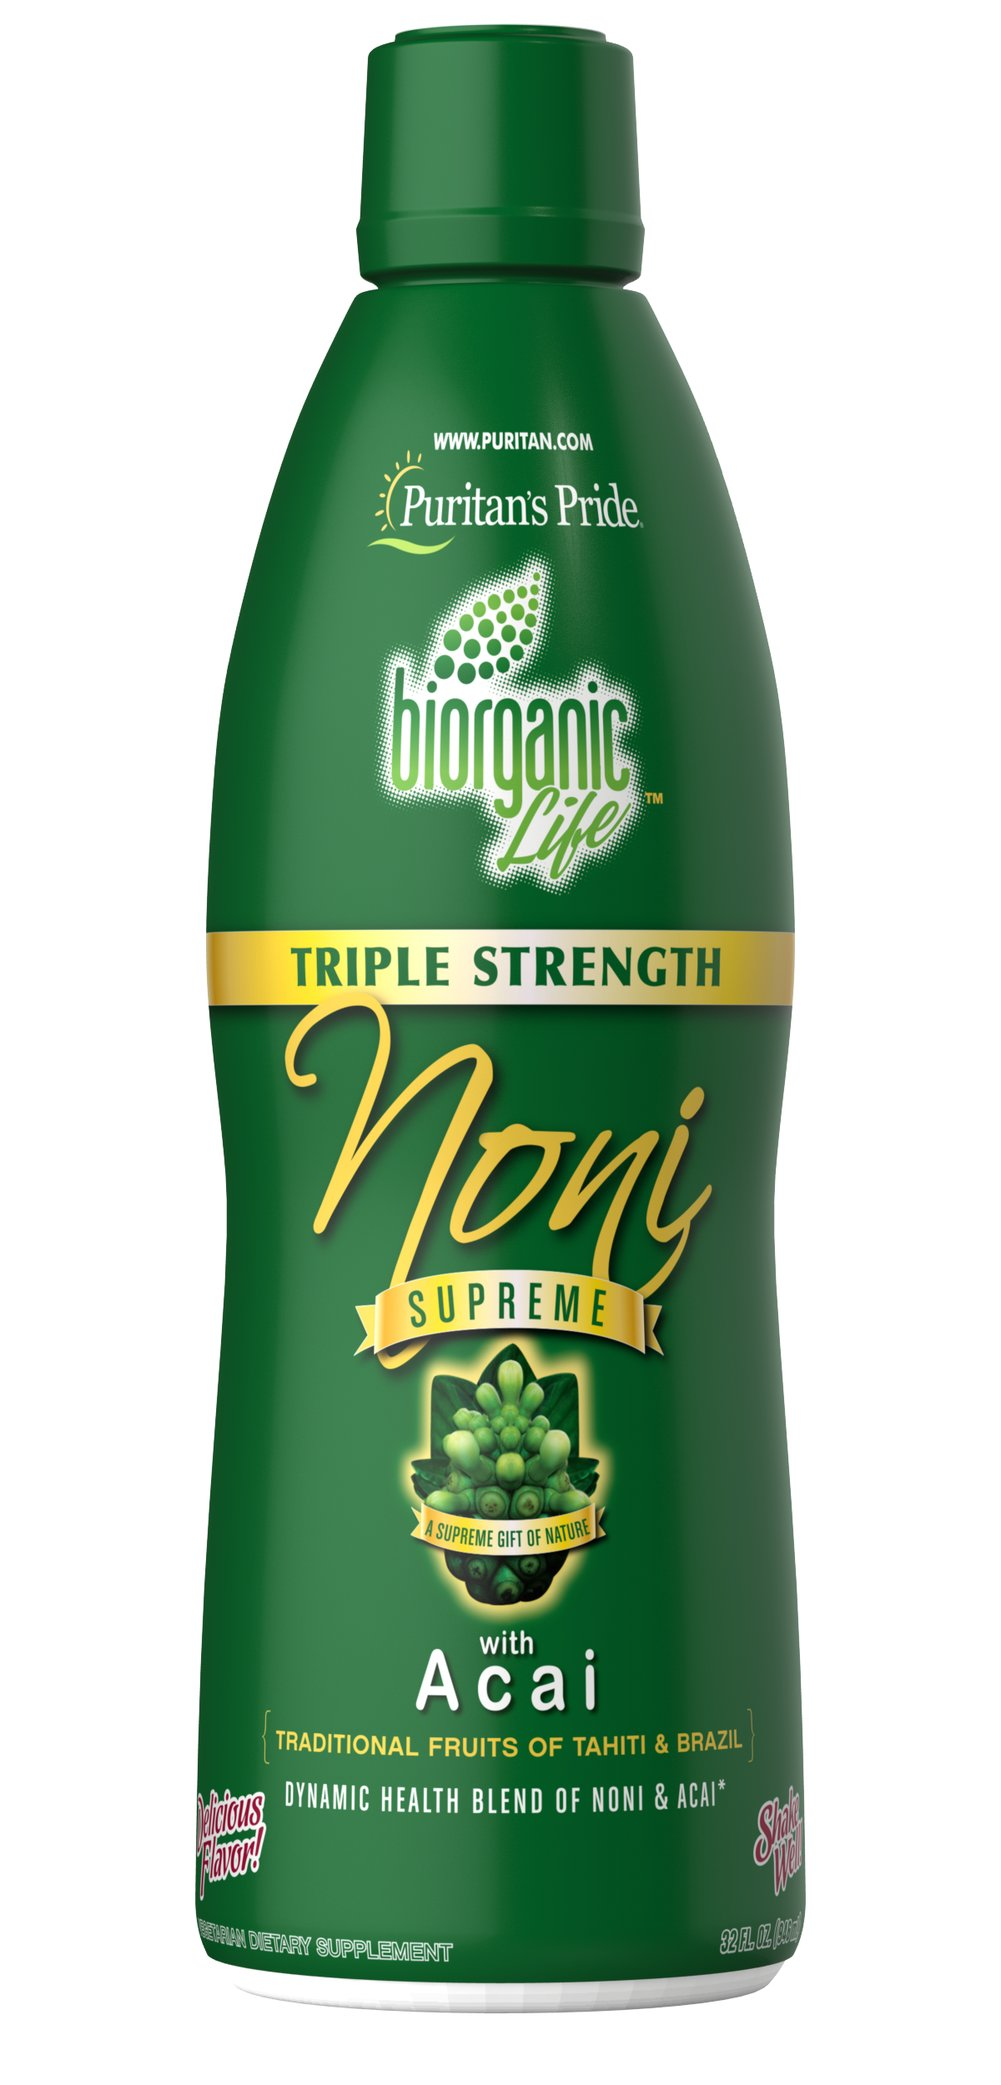 Triple Strength Noni Supreme Juice with Acai  32 oz Liquid  $28.99